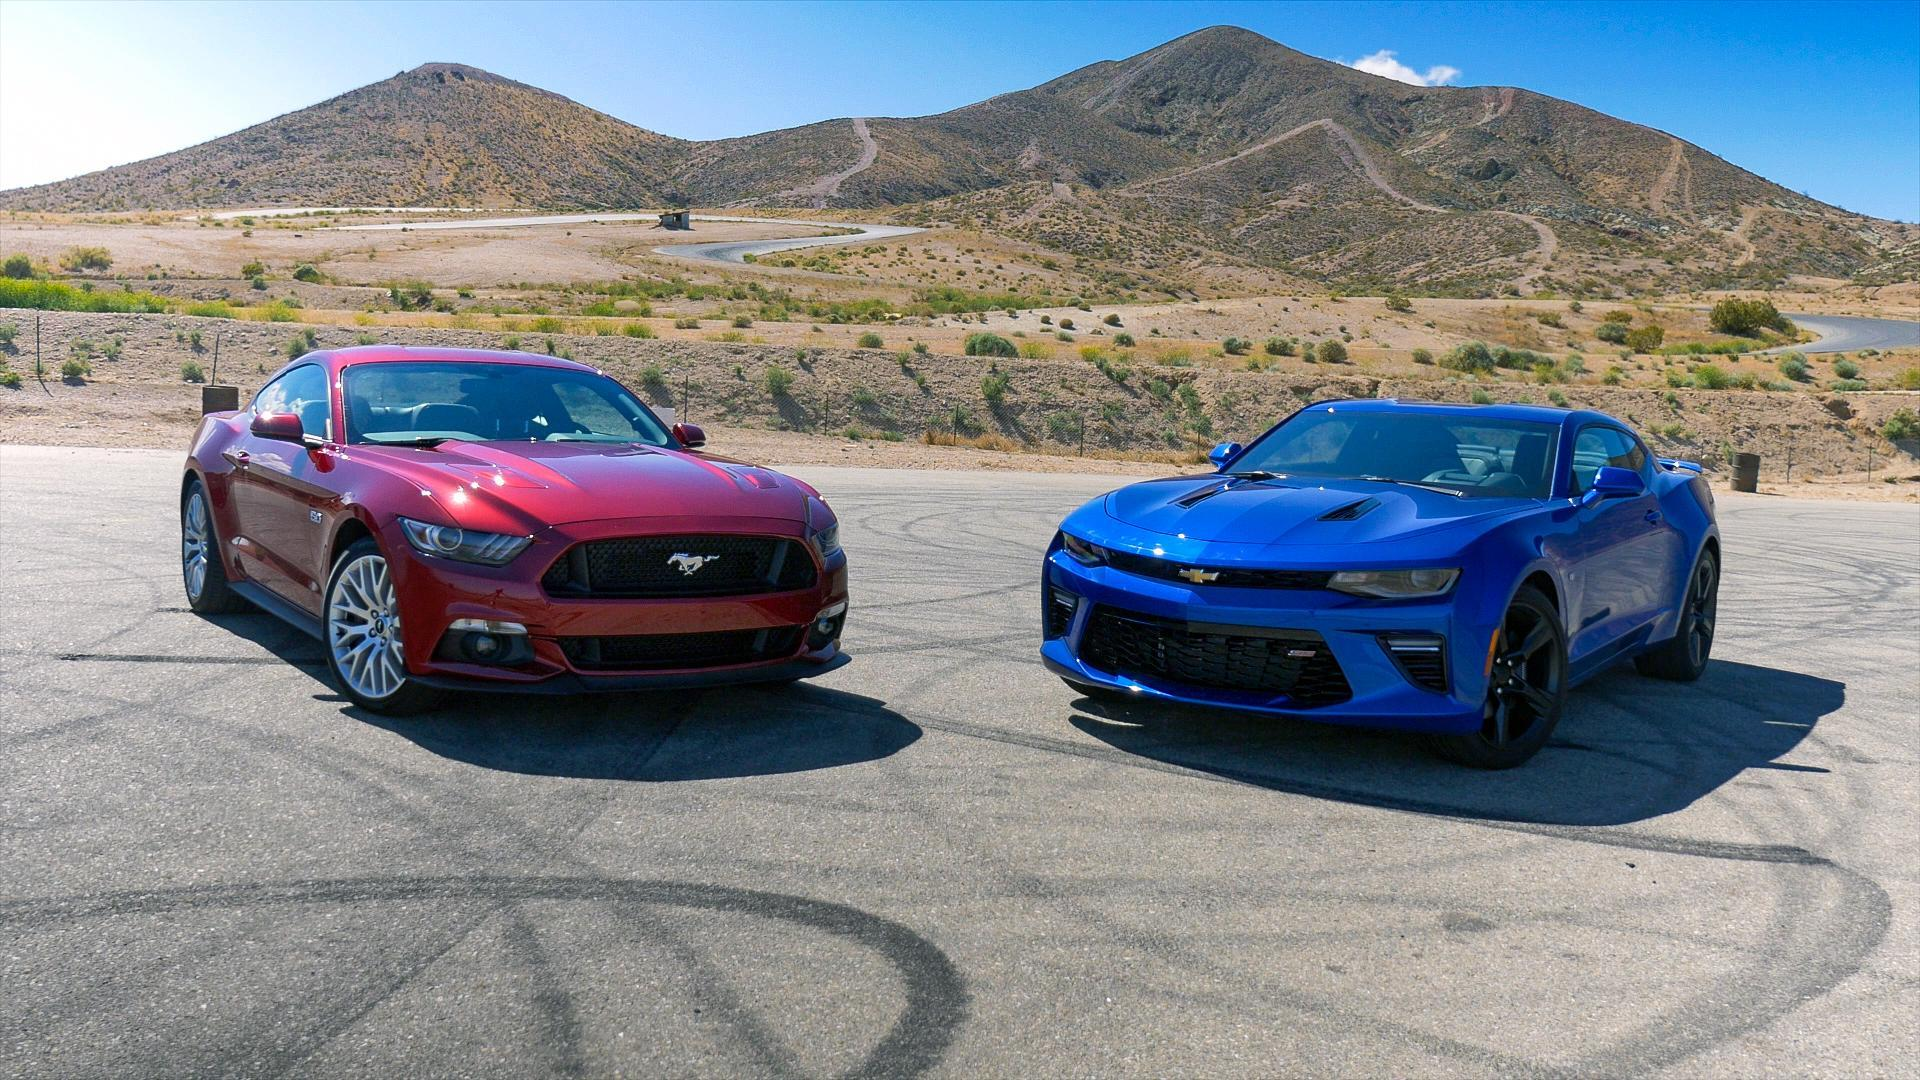 Ford mustang vs chevy camaro autoblogs pony car shootout autoblog